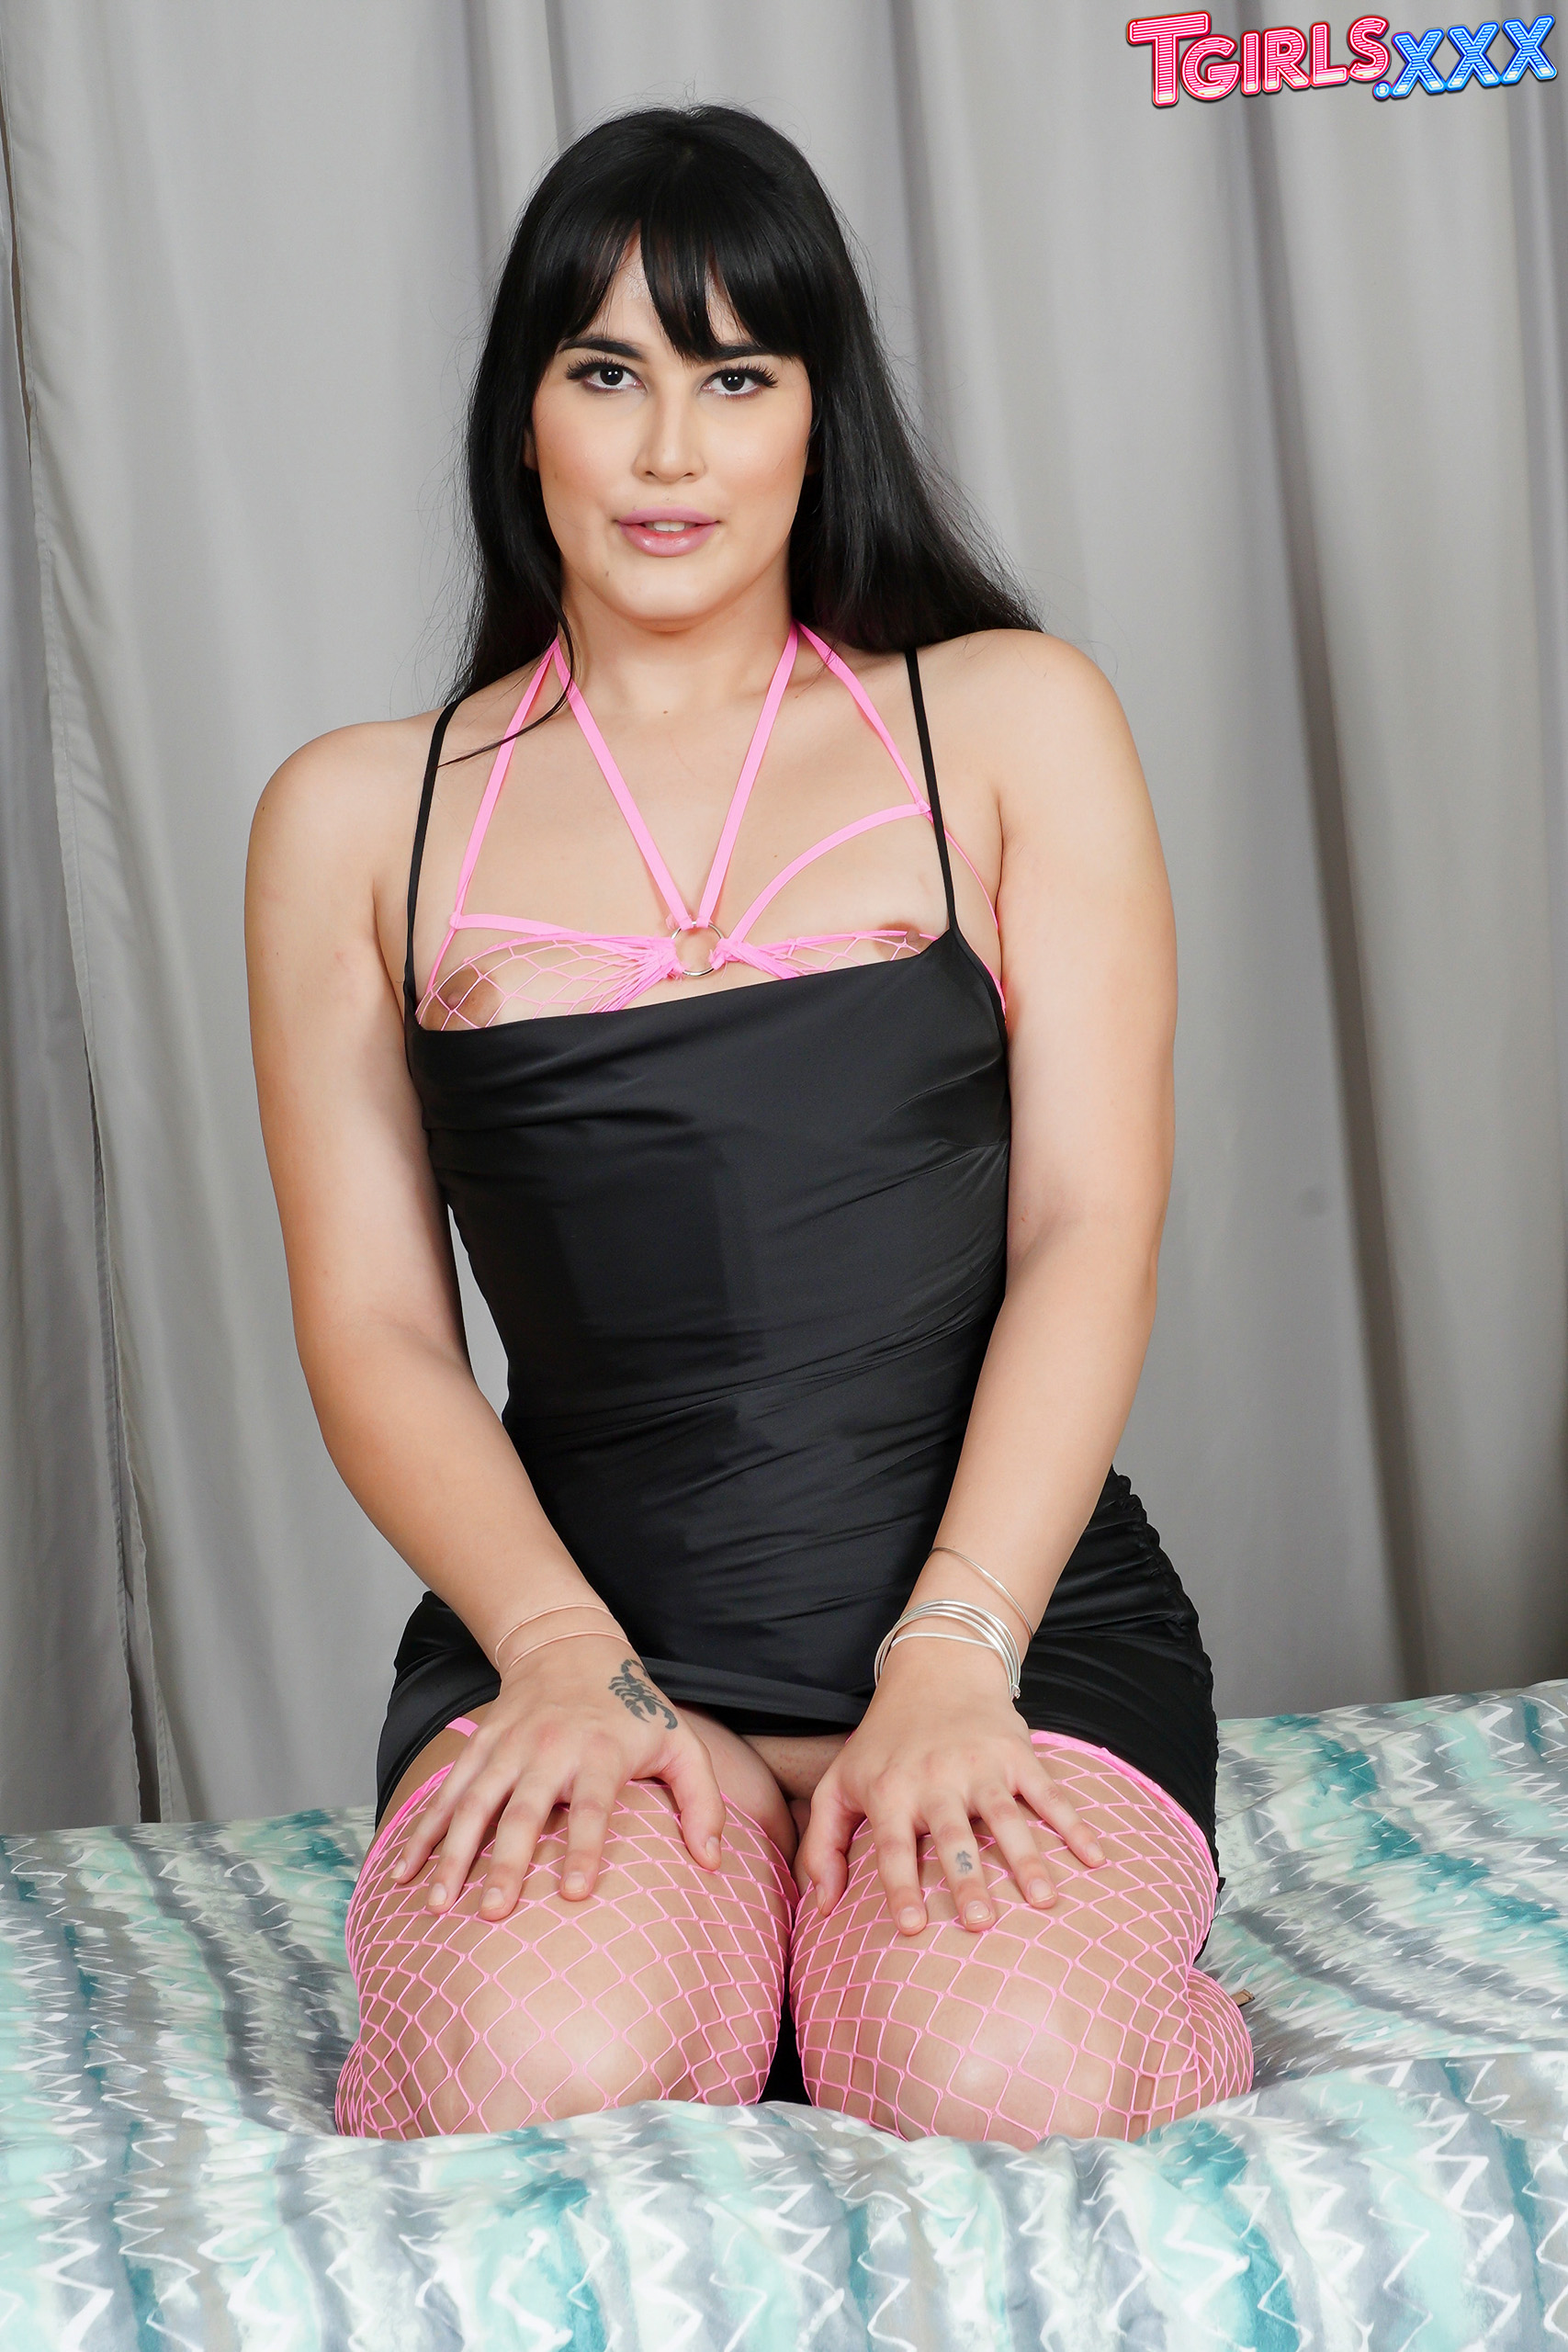 susie brights journal porn education road shows squaring #shemale #MiaBellamy #darkhair #smalltits #chubby #beautifulface